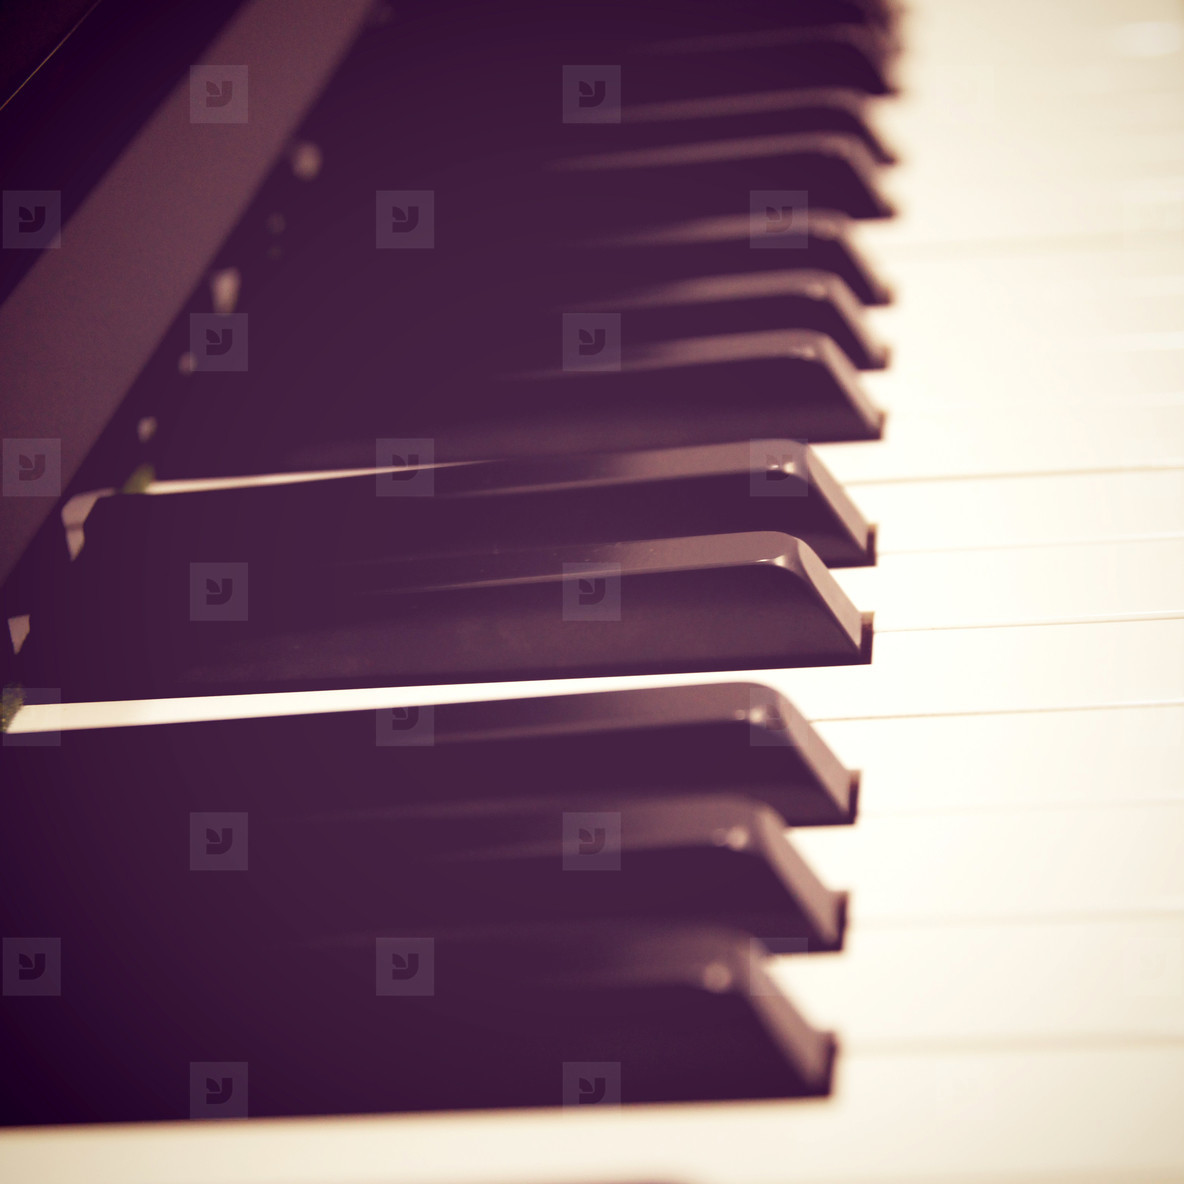 Close up of piano keys